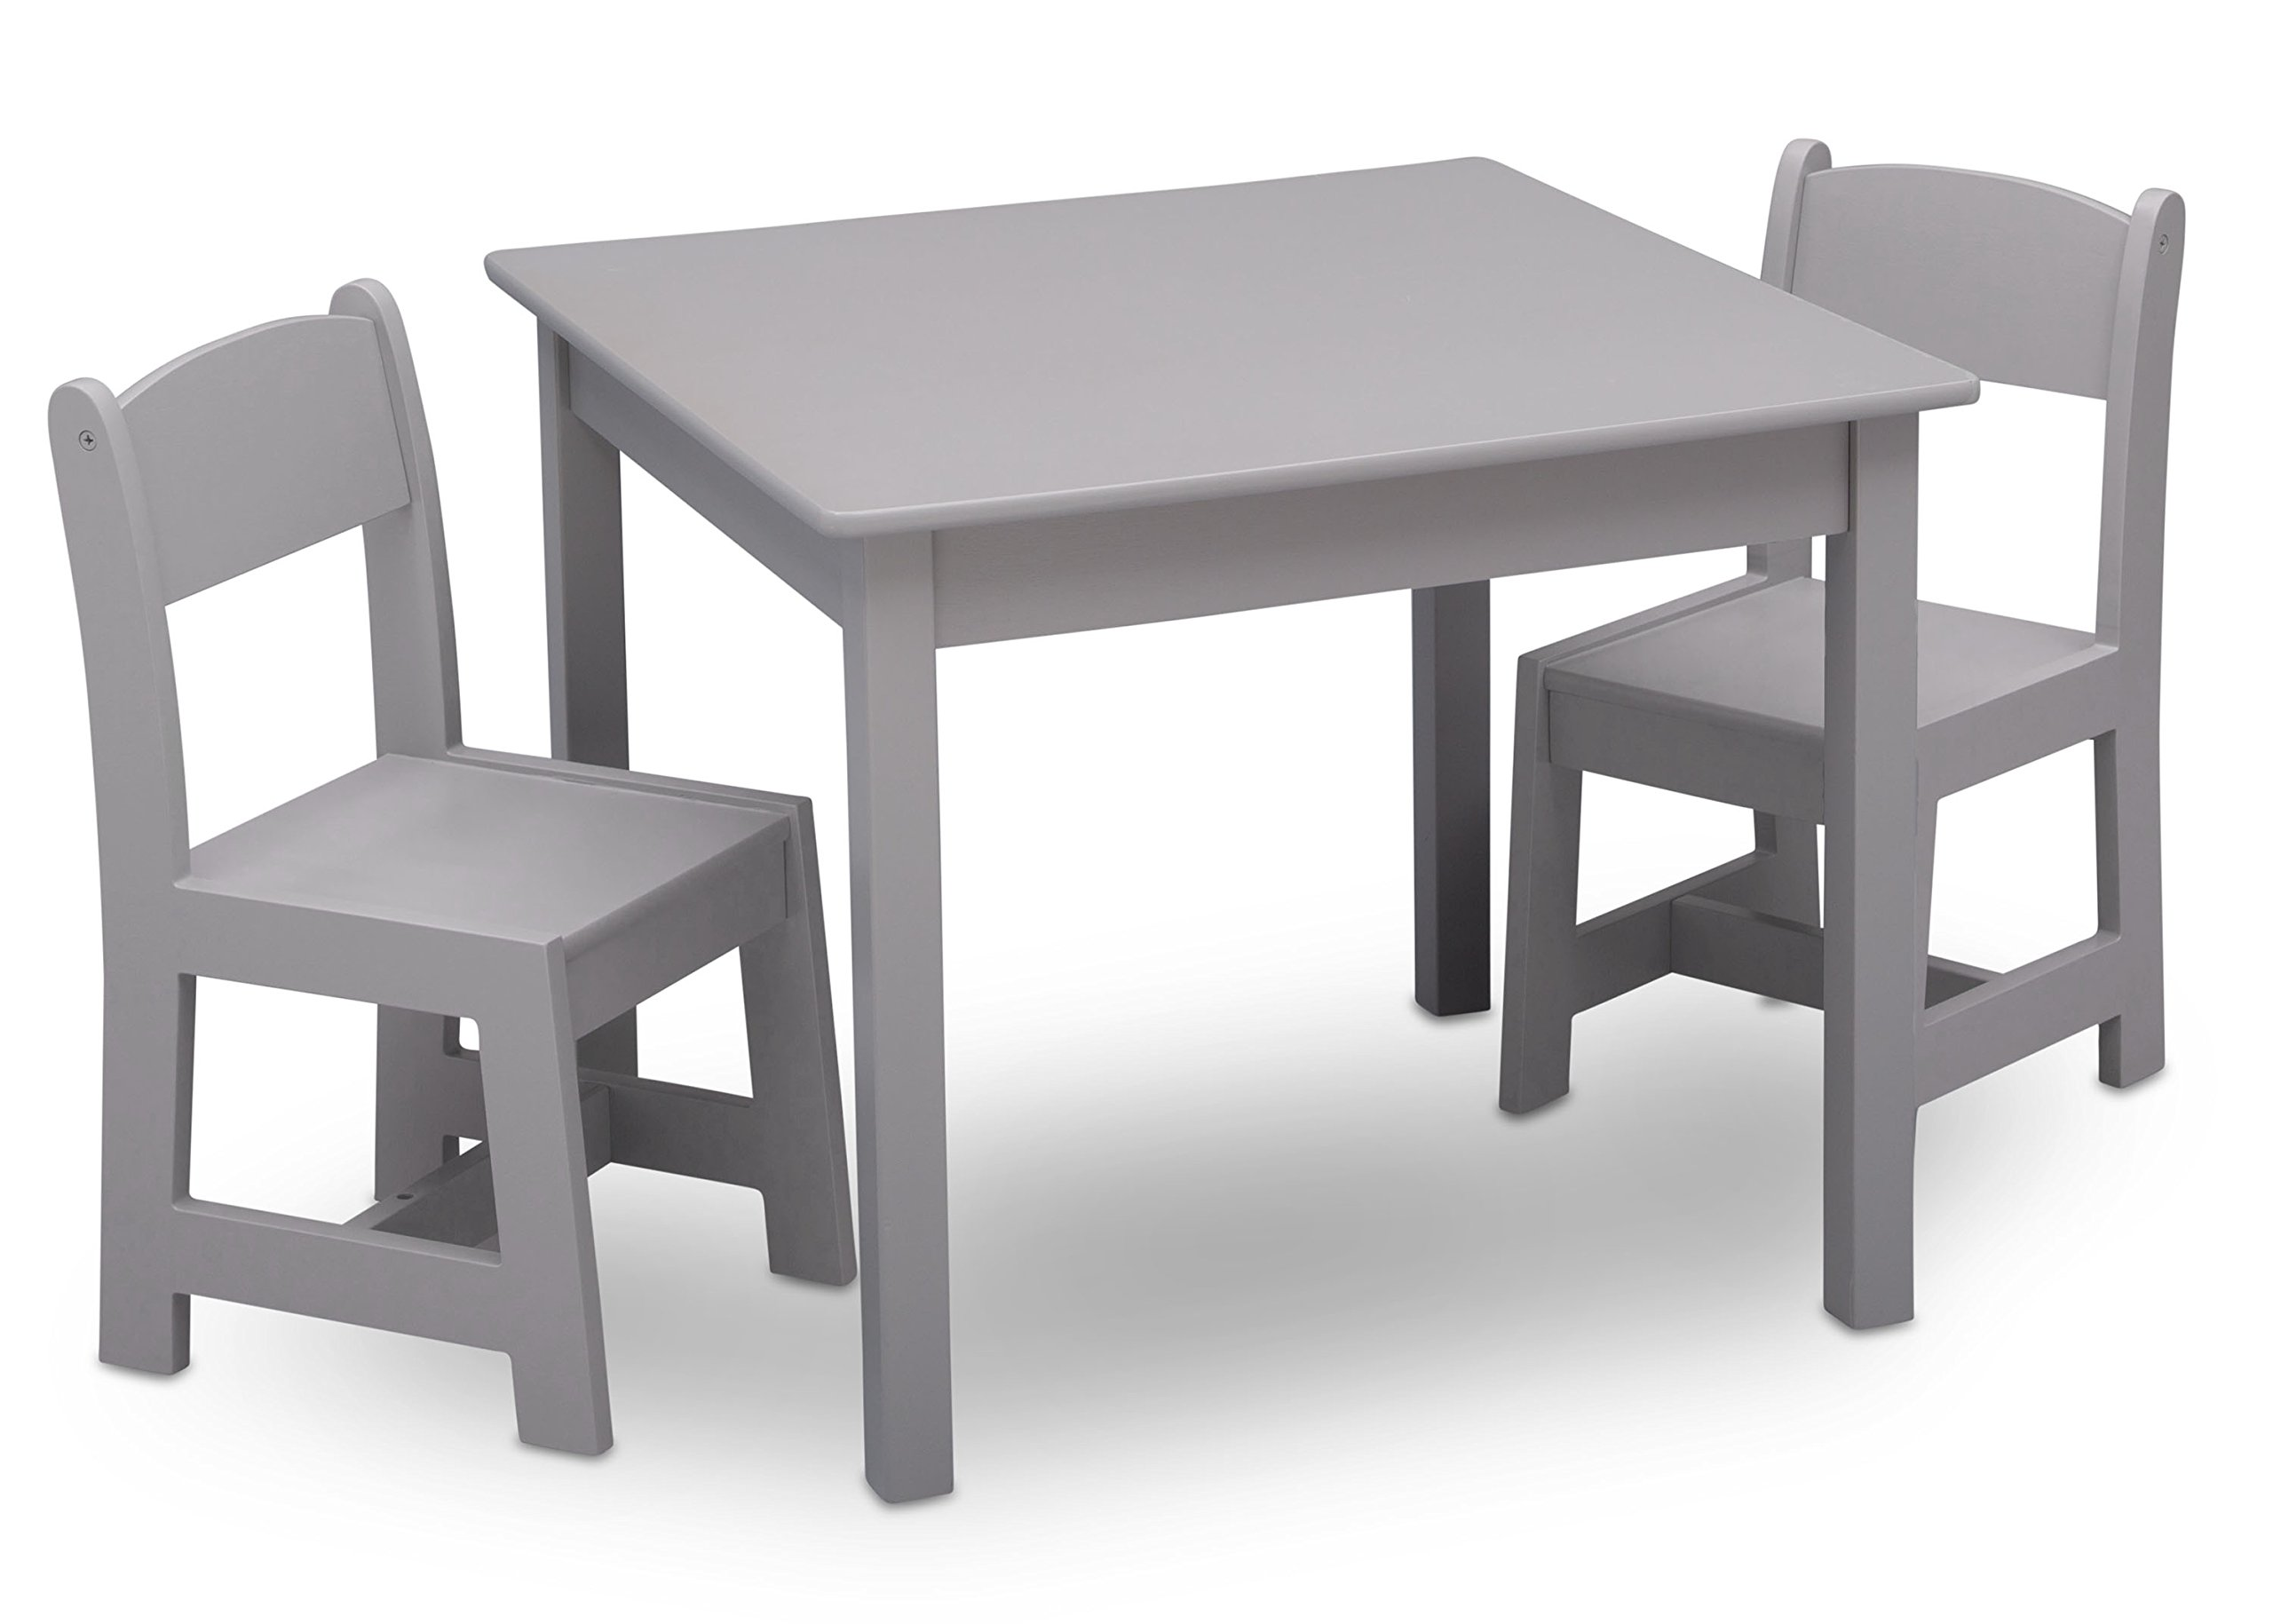 Delta Children MySize Kids Wood Chair Set and Table (2 Chairs Included), Grey by Delta Children